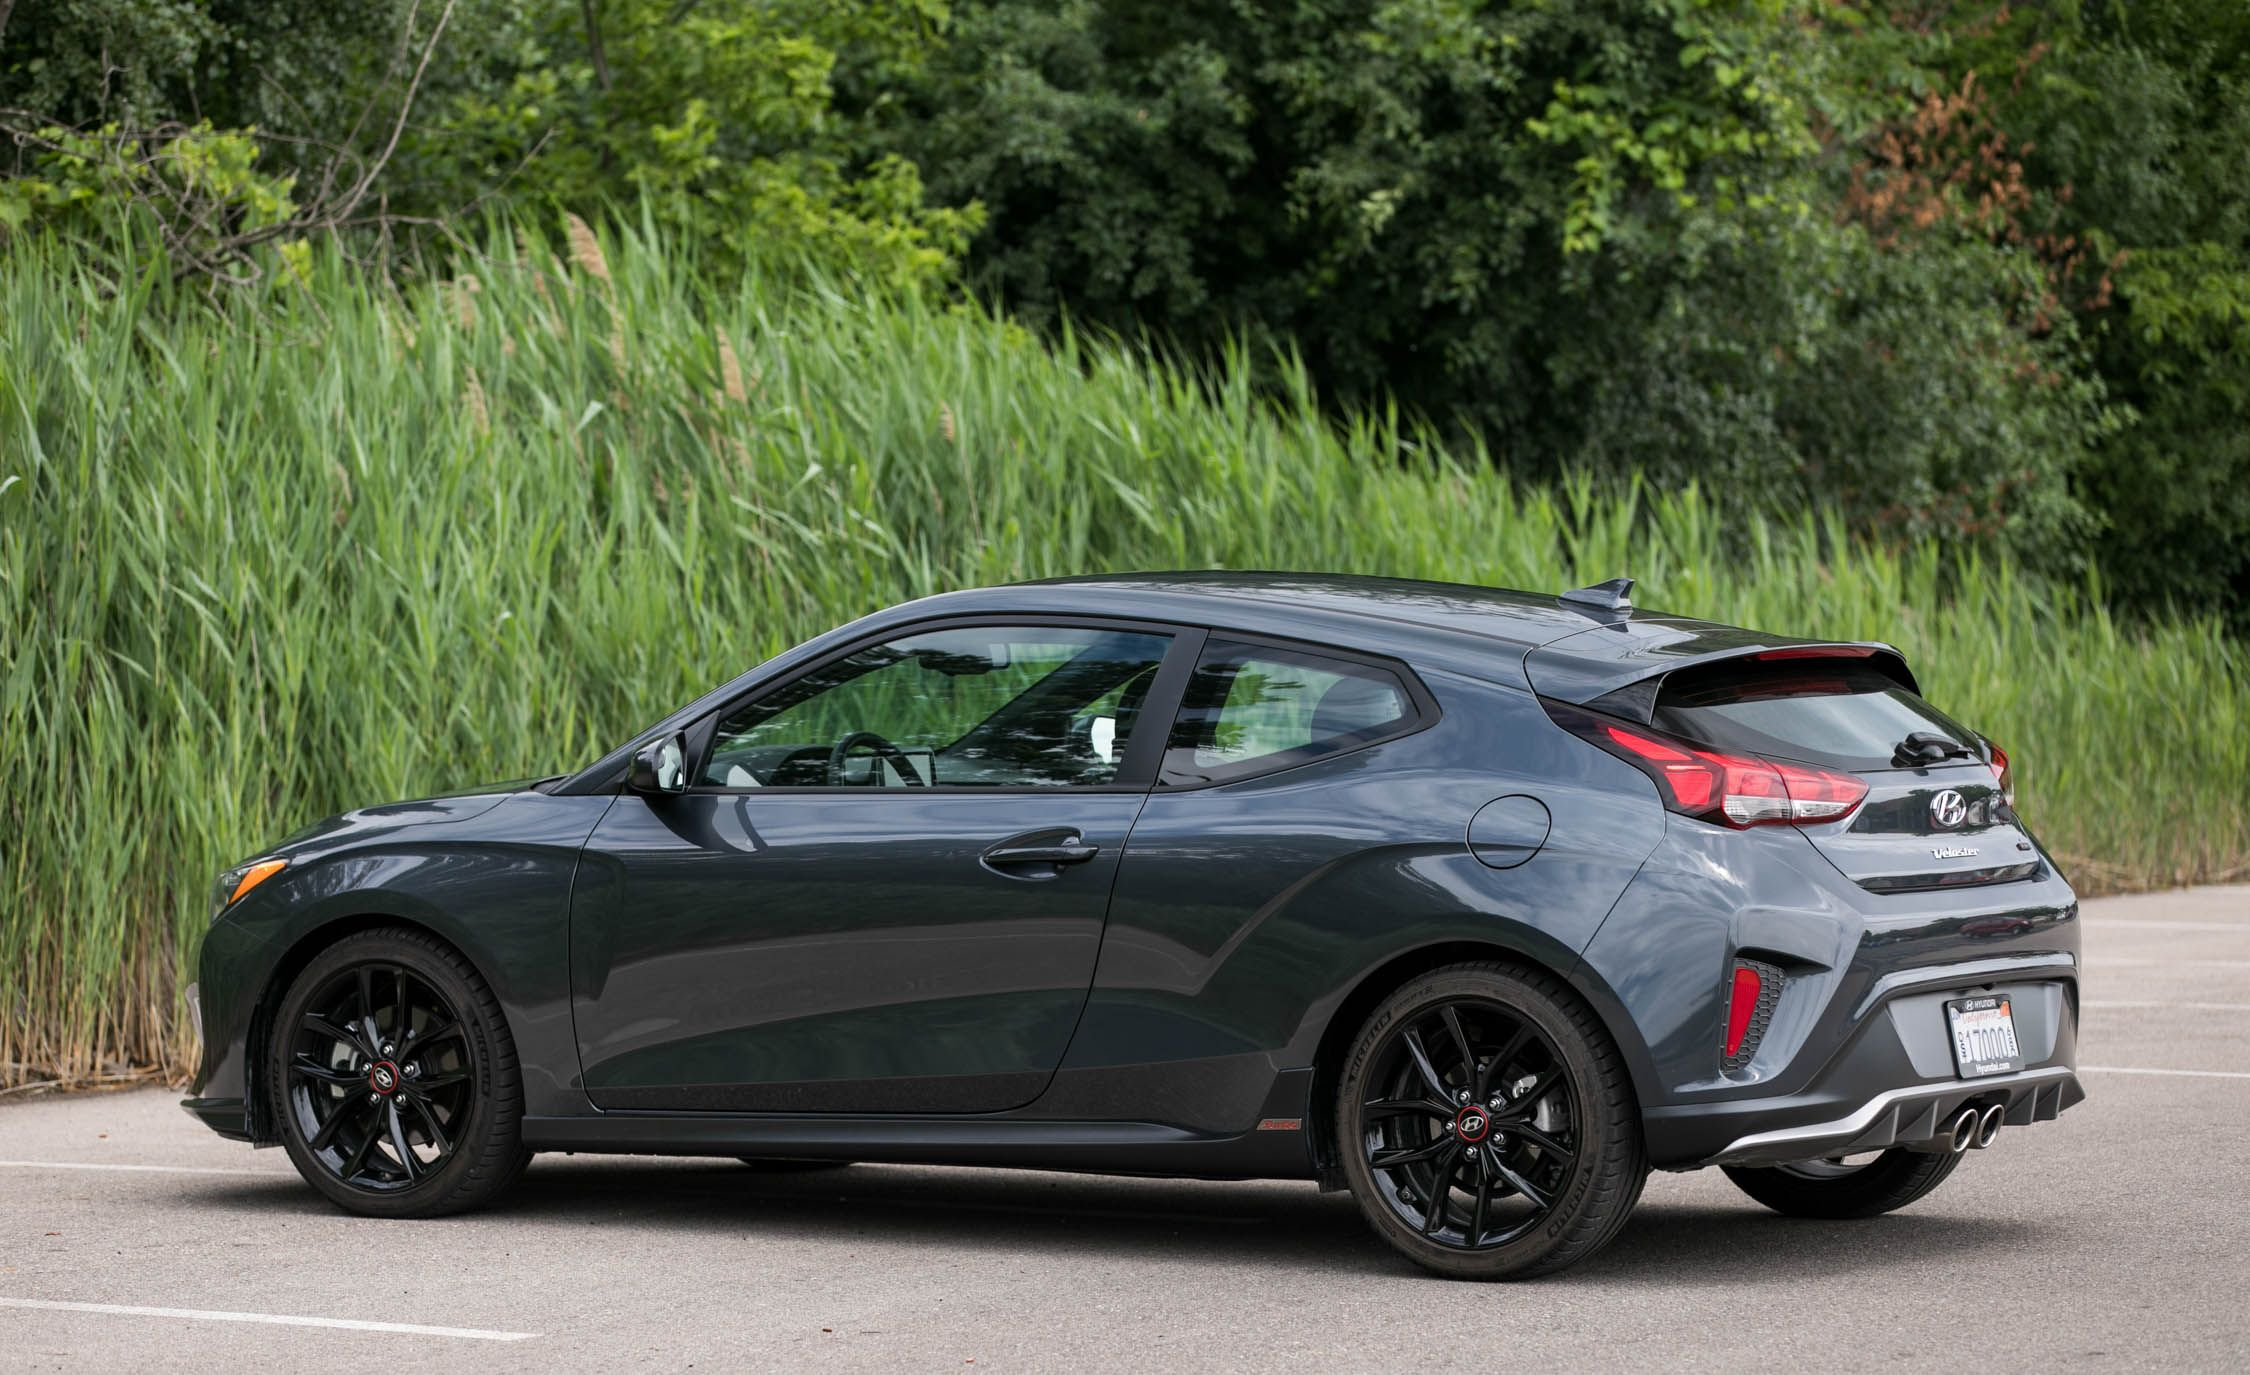 2019 Hyundai Veloster Reviews Price Photos And Specs Car Driver